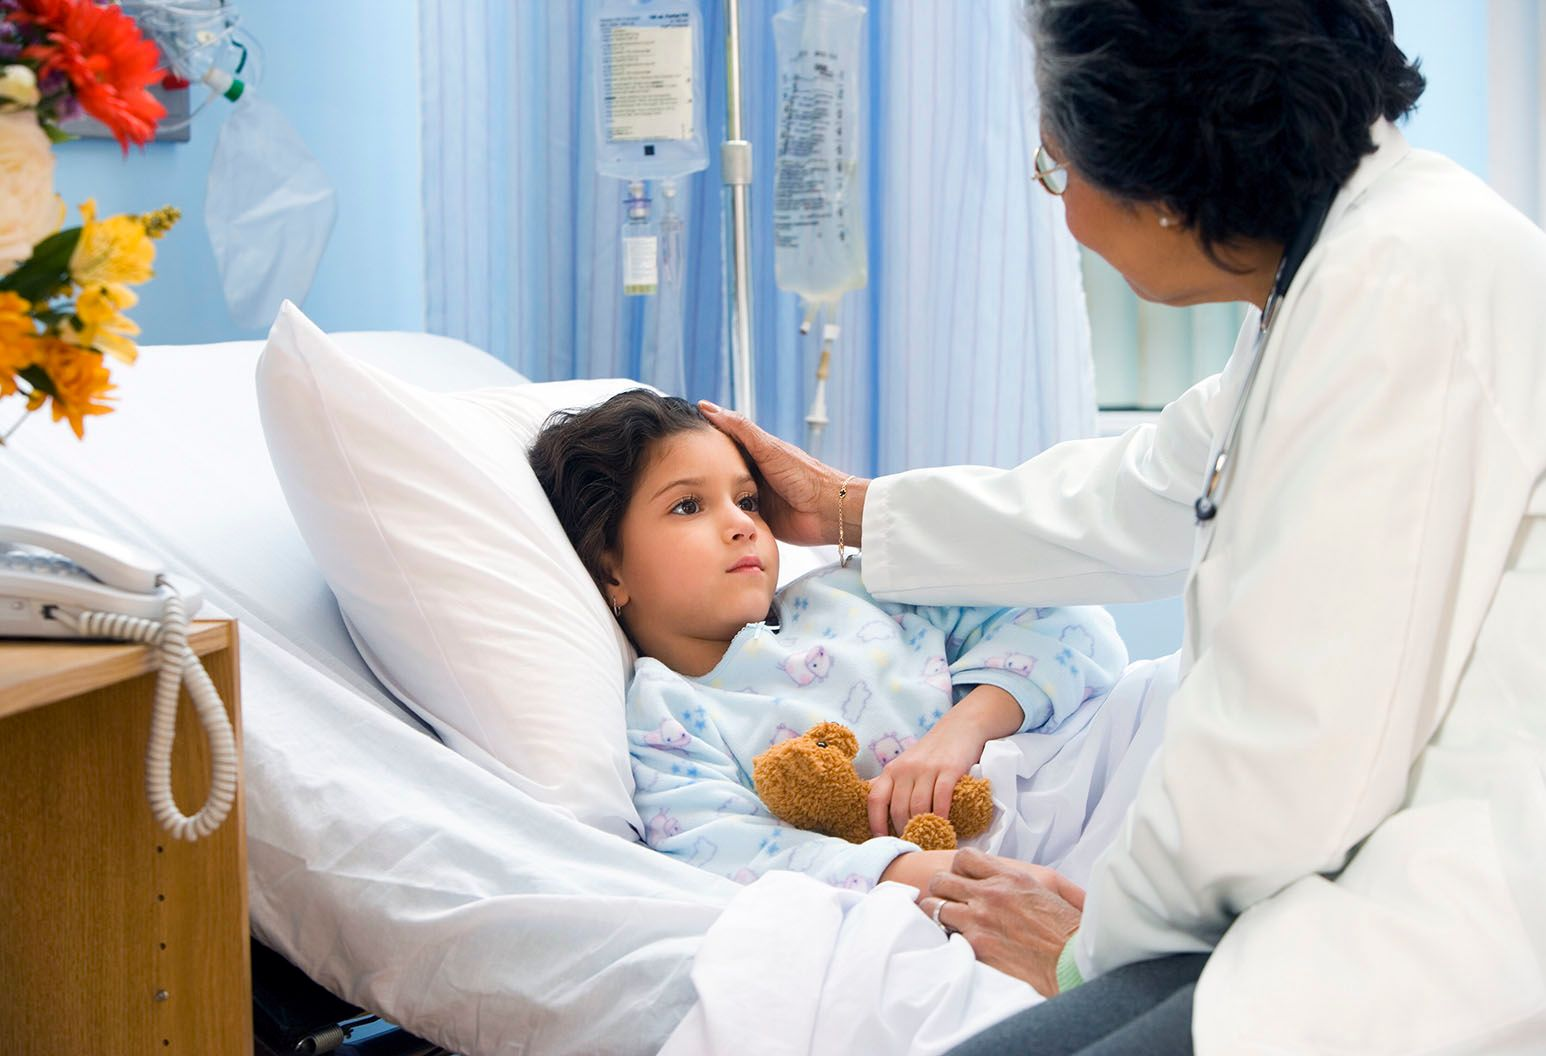 A little girl with brown hair is holding a teddy bear laying in a hospital bed. An older female clinician sits on the bed and has her hand on her head, consoling her